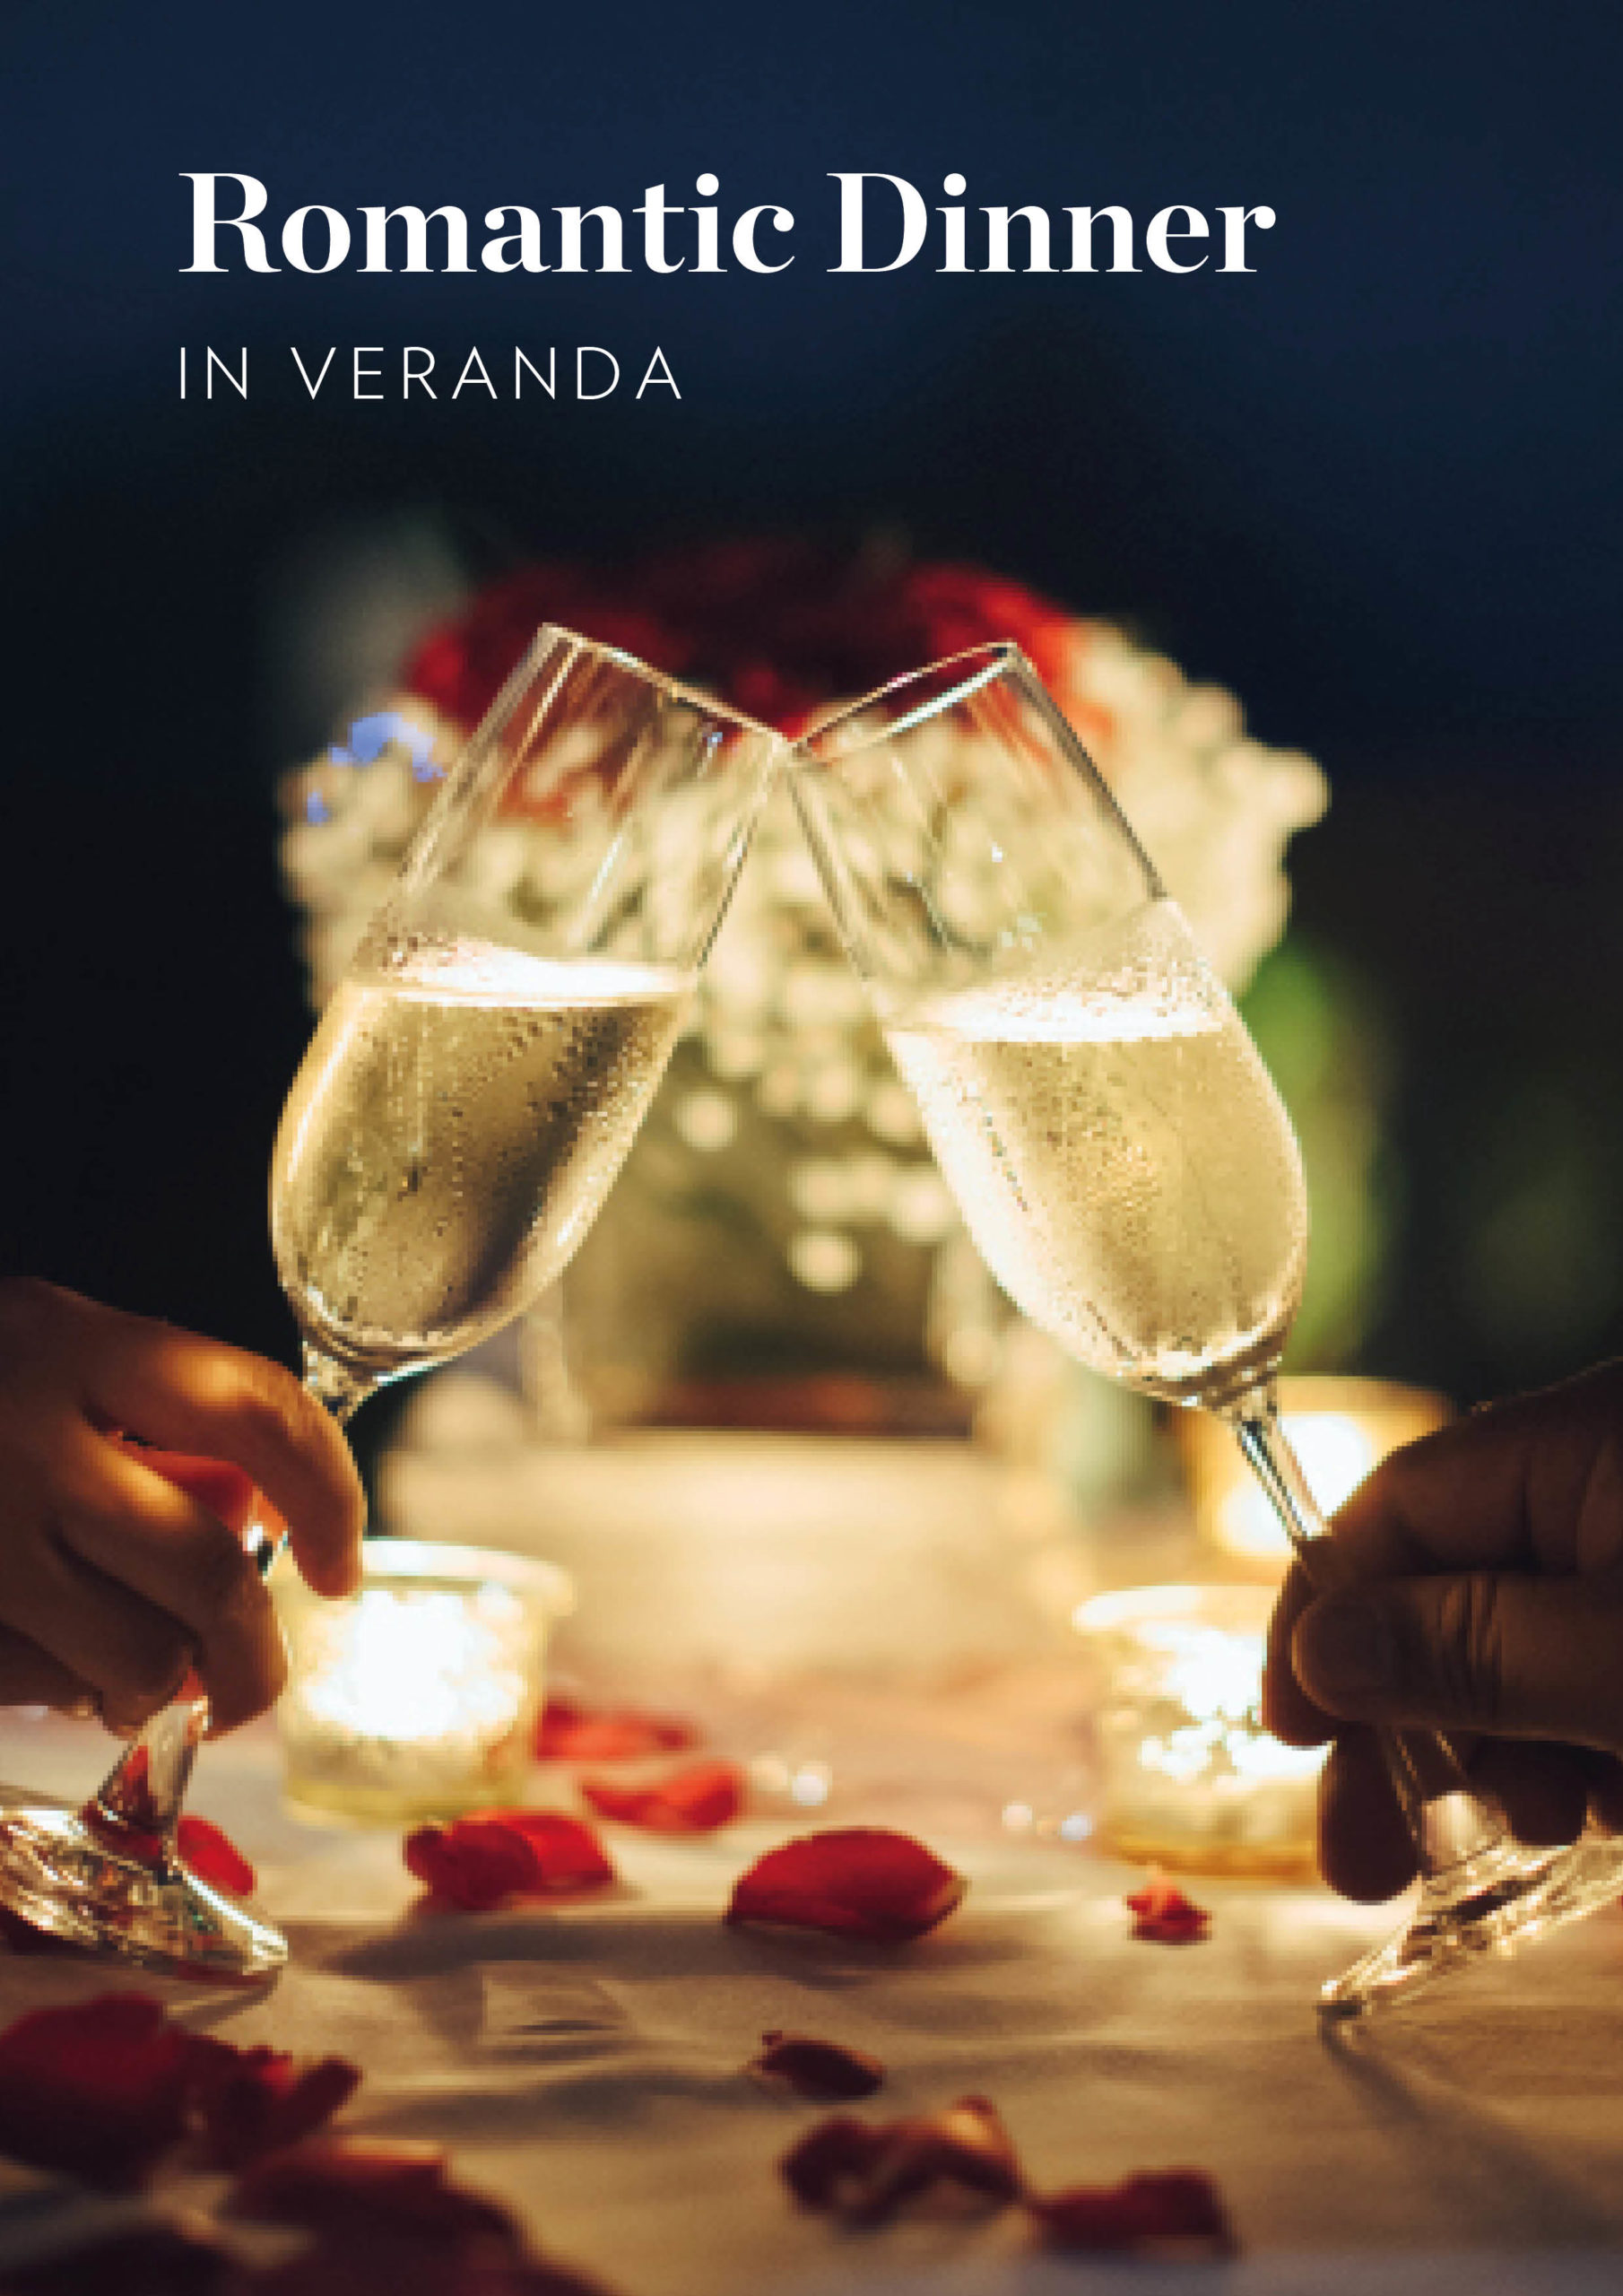 Romantic Dinner in Veranda